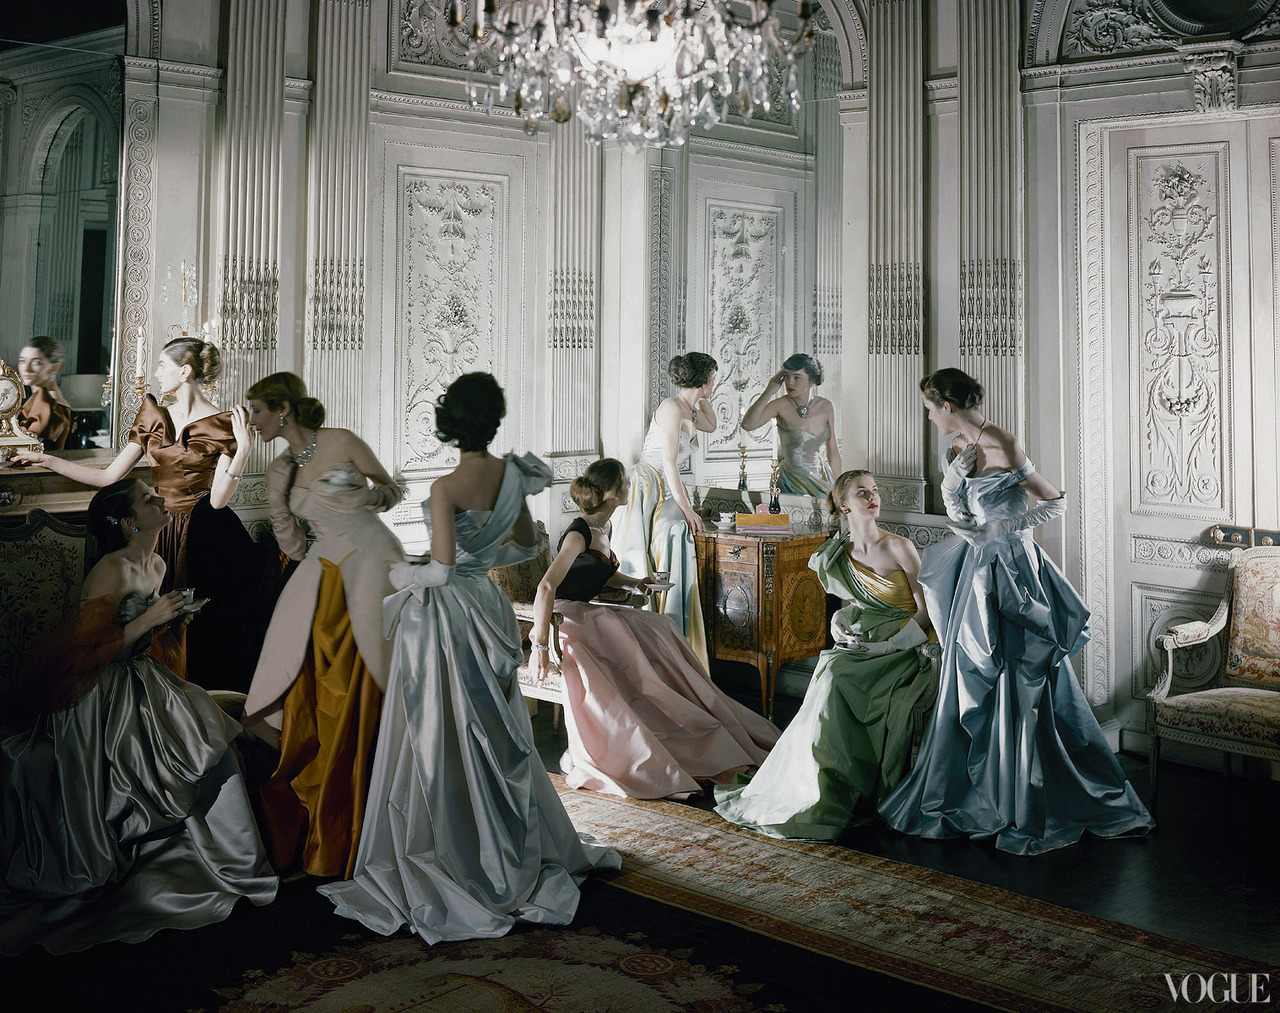 Cecil Beaton's iconic image of Charles James ball gowns, photographed in the salon of French & Co., New York, for Vogue, June 1st, 1948